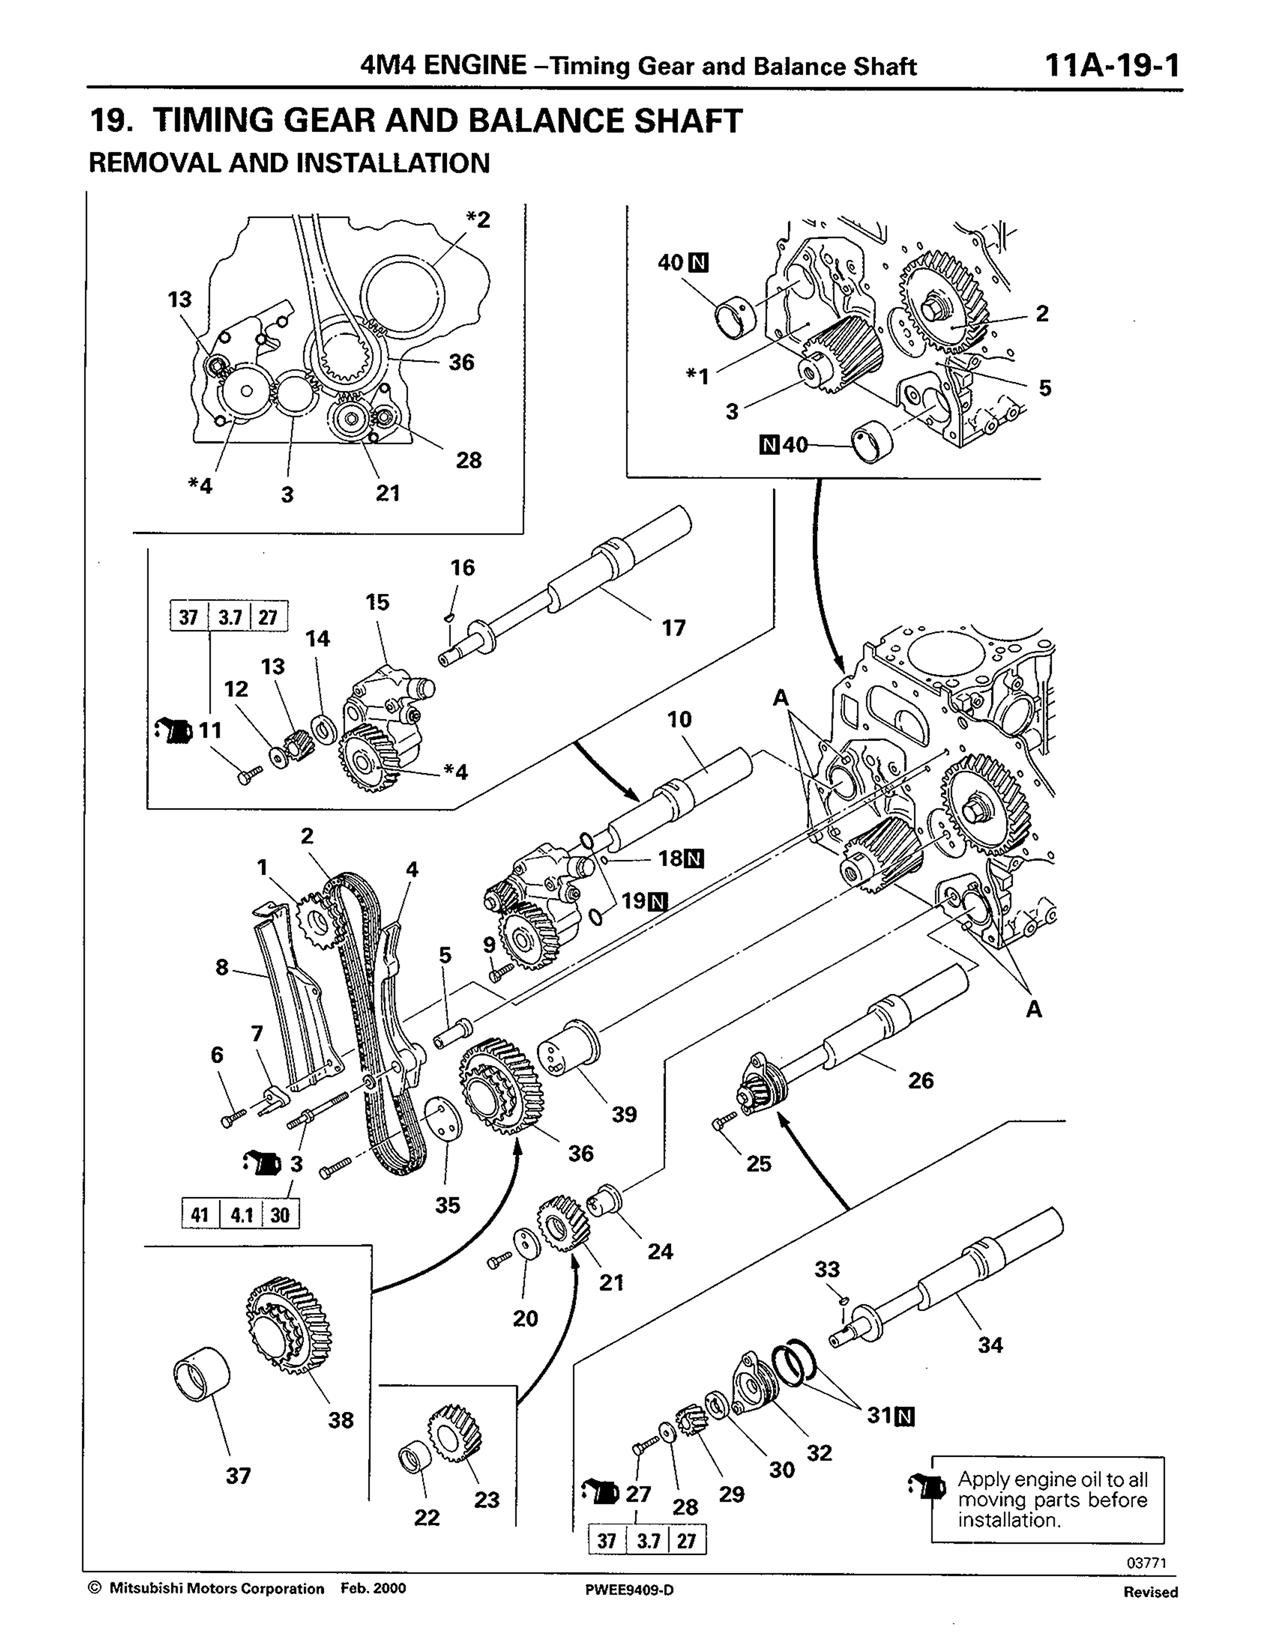 Please advise timing marks for injector pump on 4M40 Mitsubishi